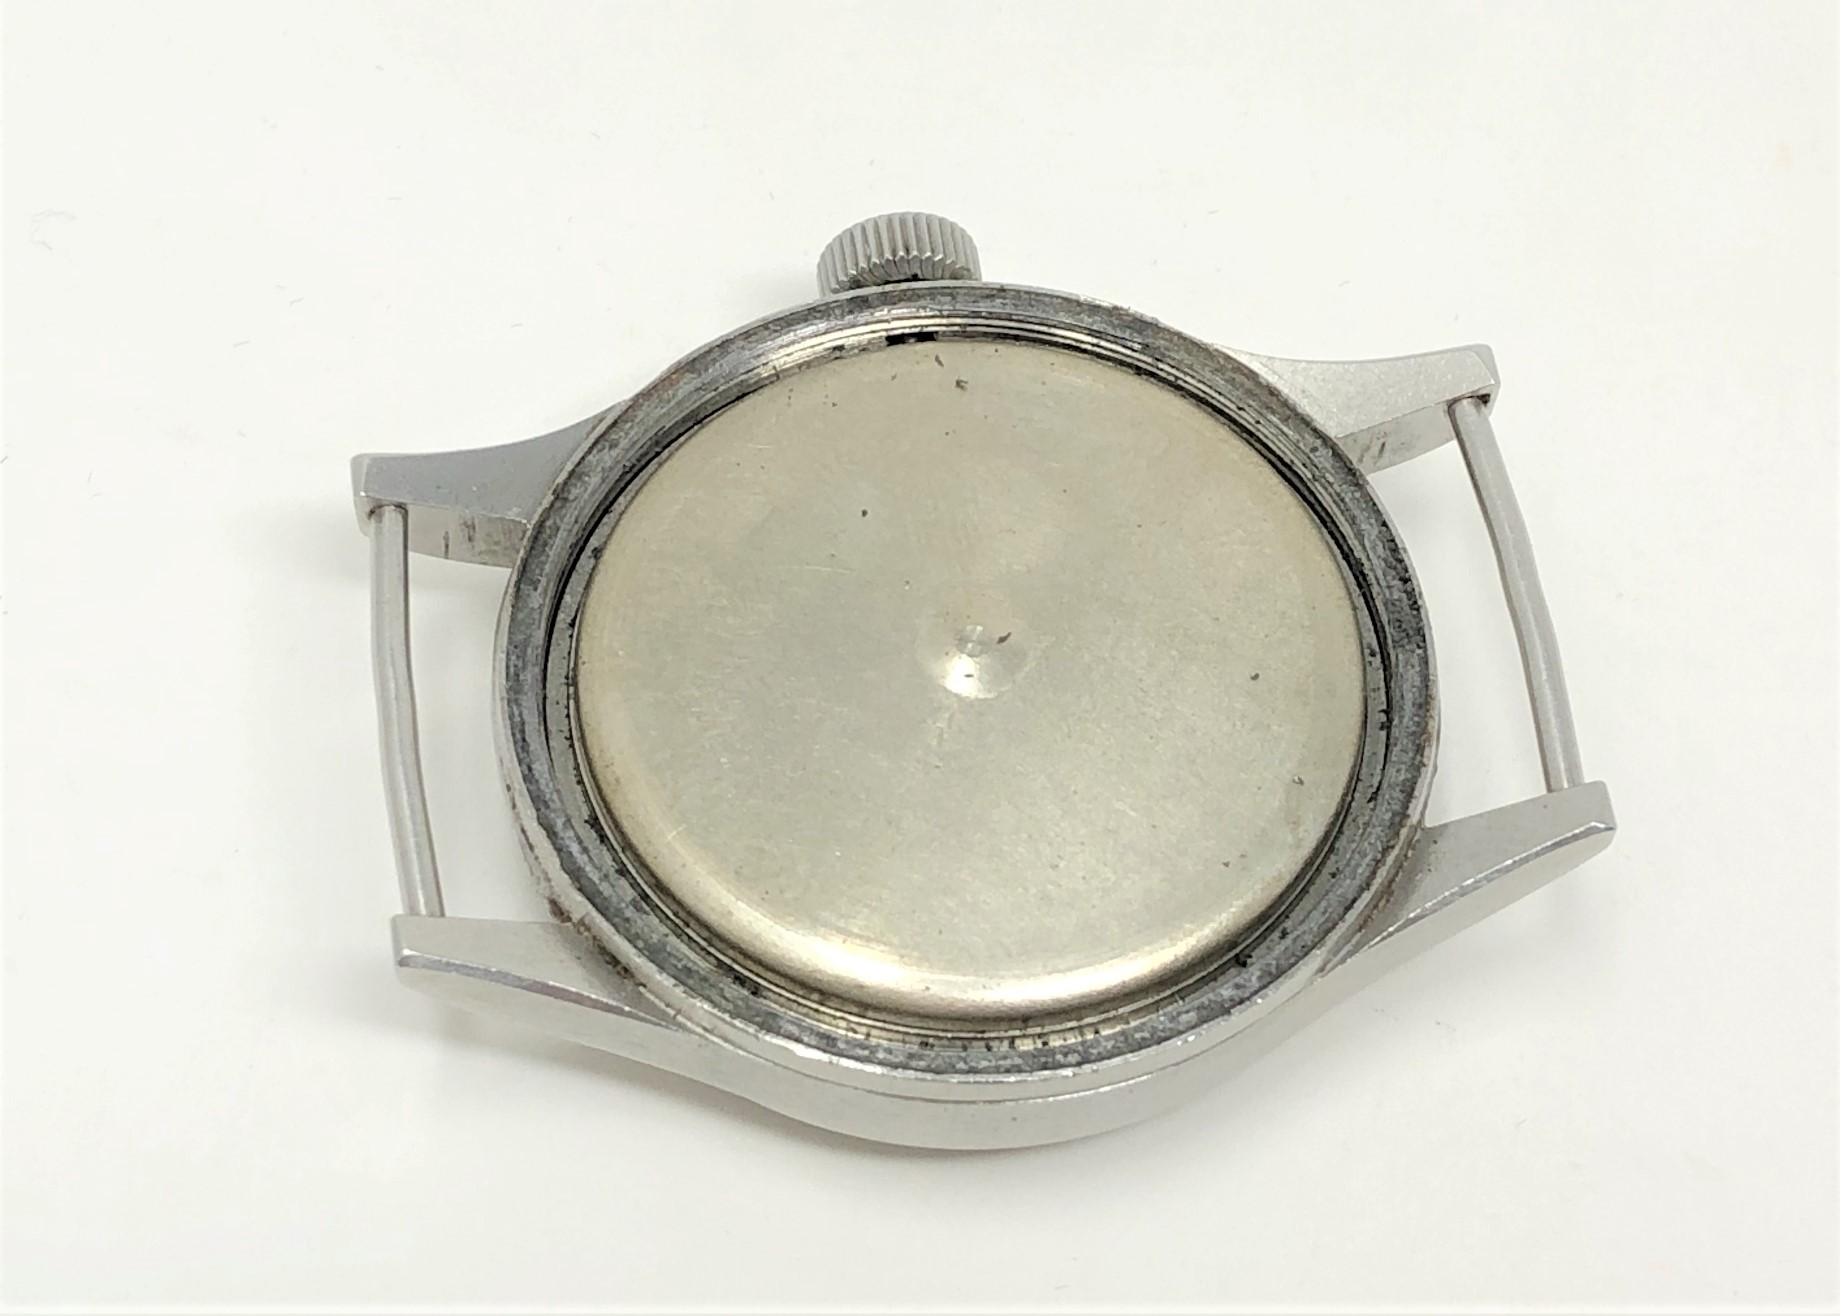 A very rare stainless steel British Military Grana wristwatch, - Image 9 of 11